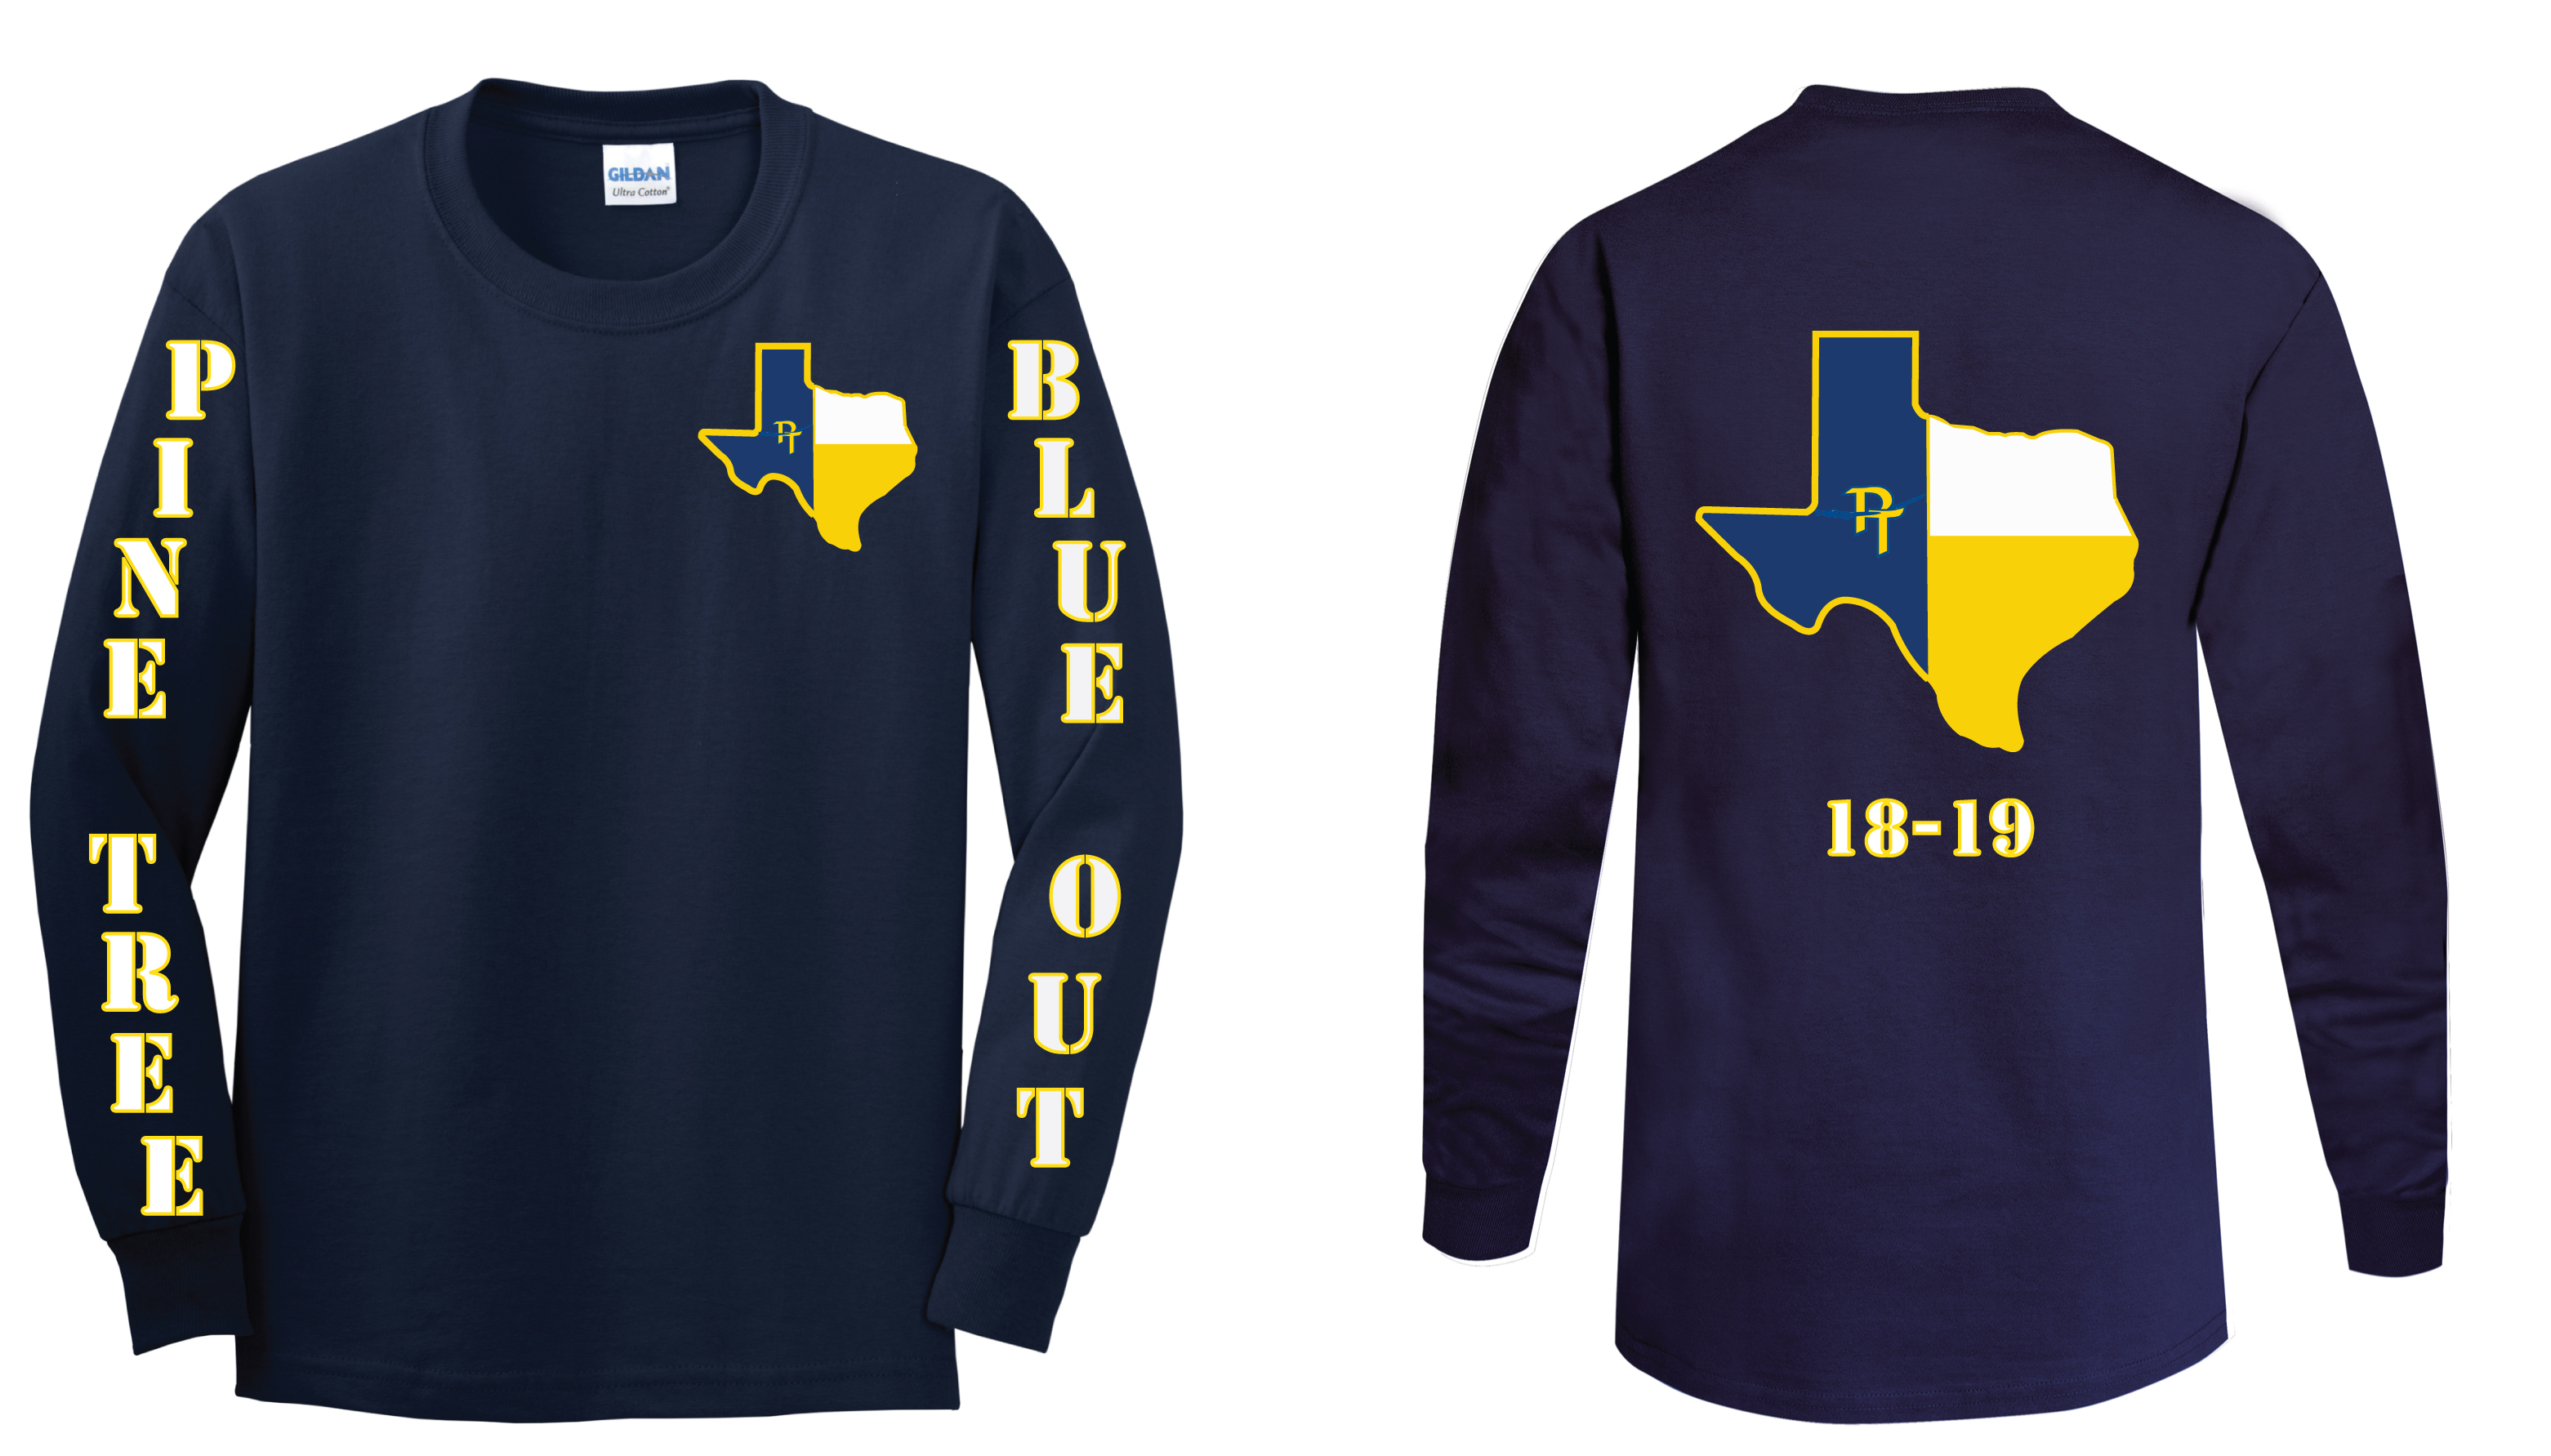 G. Blue and Gold Texas by Brody Delaurelle 10th Grade (design will be on a short sleeve t-shirt)